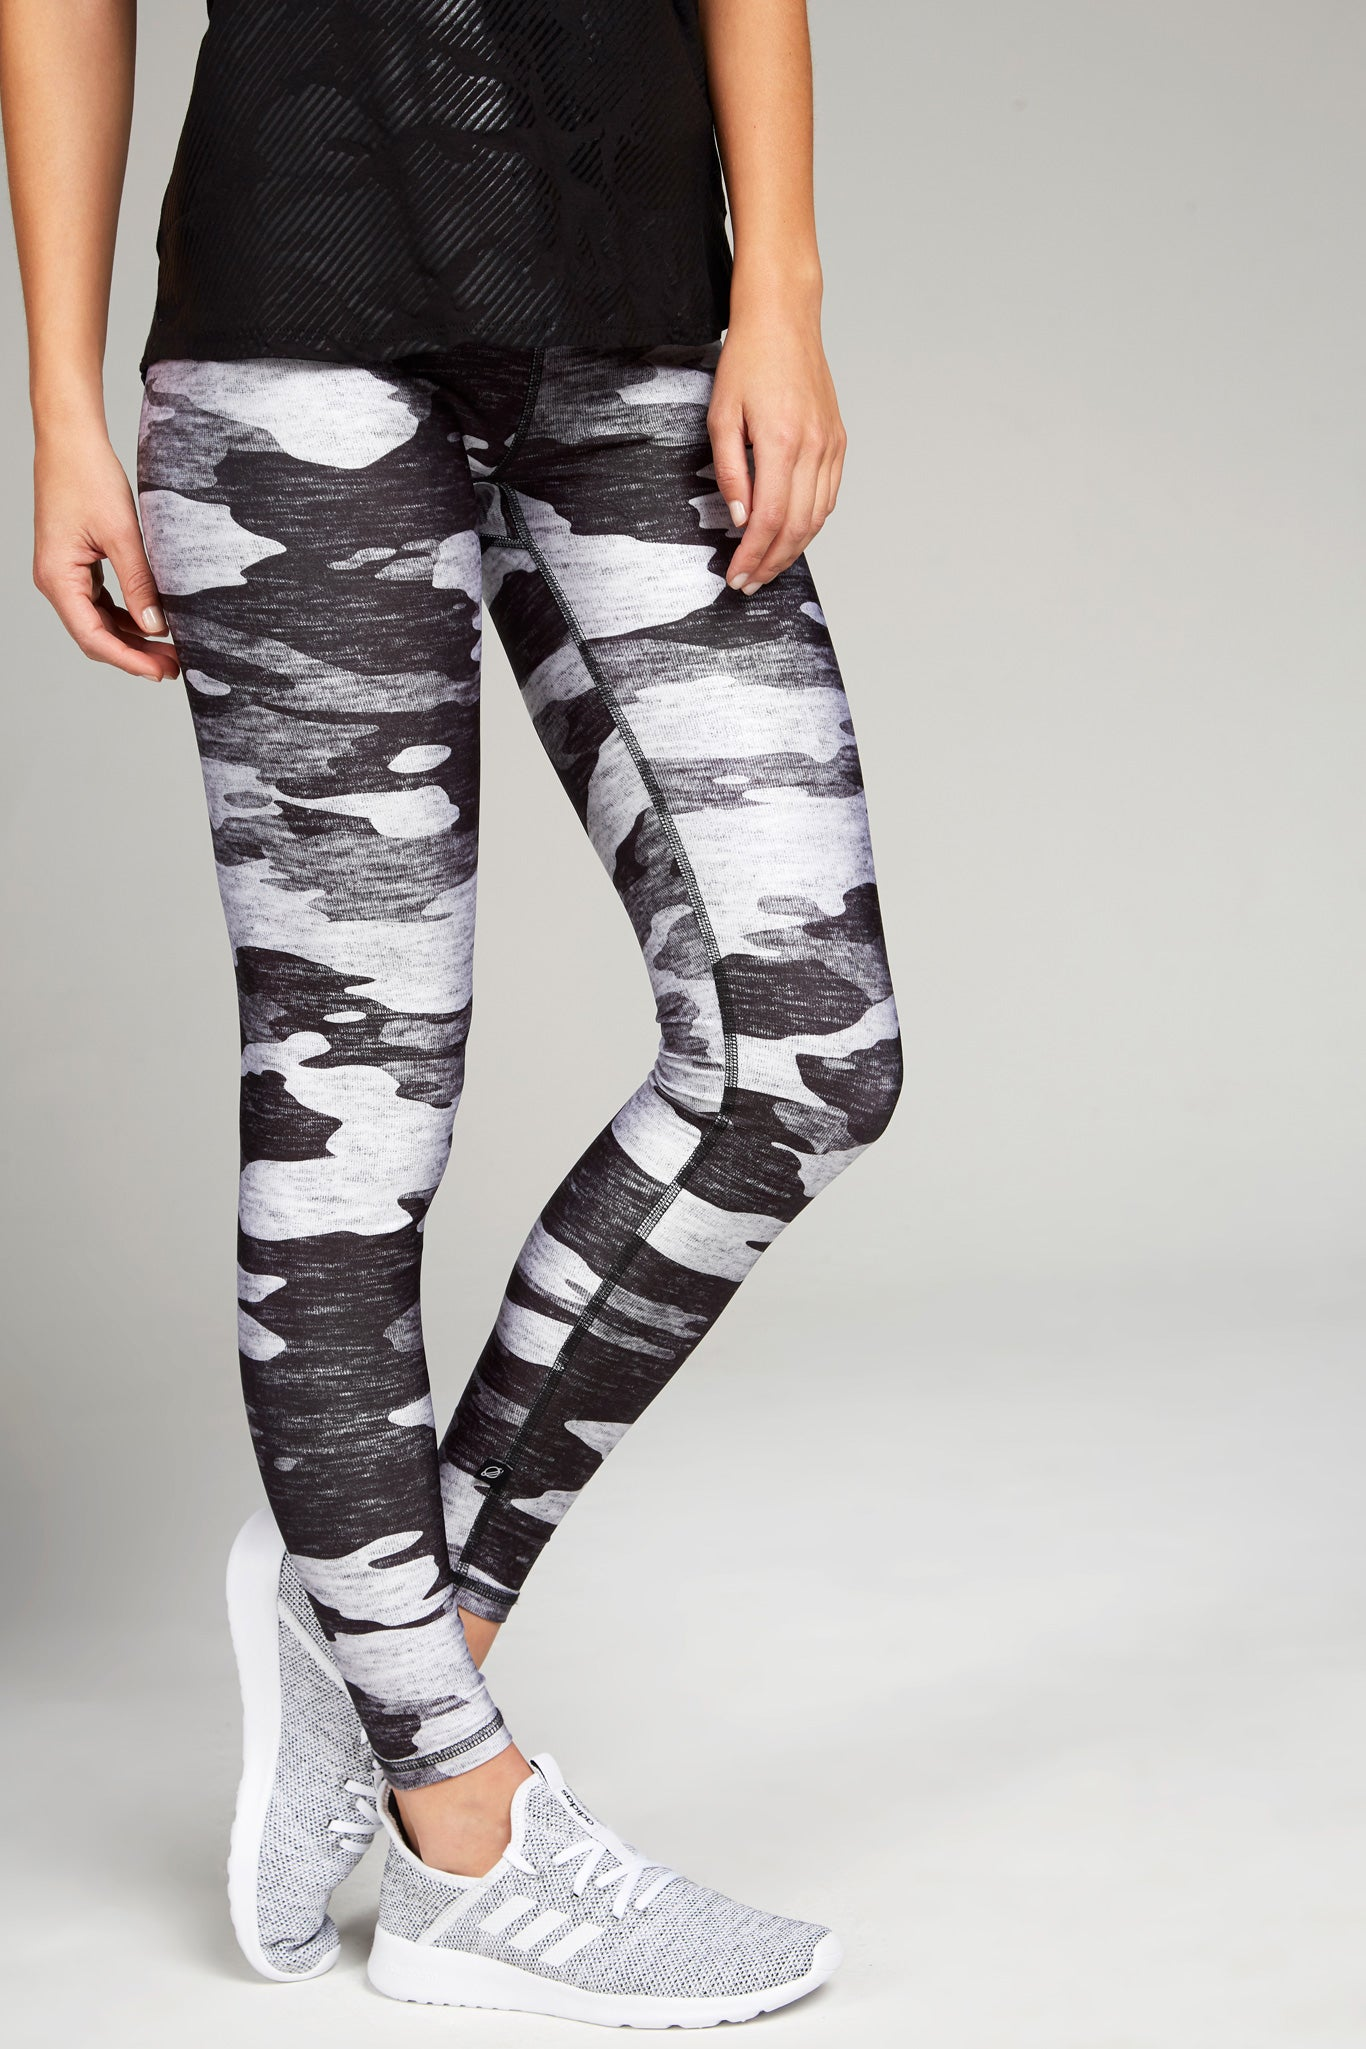 Heathered Gray Camo Tall Band Leggings